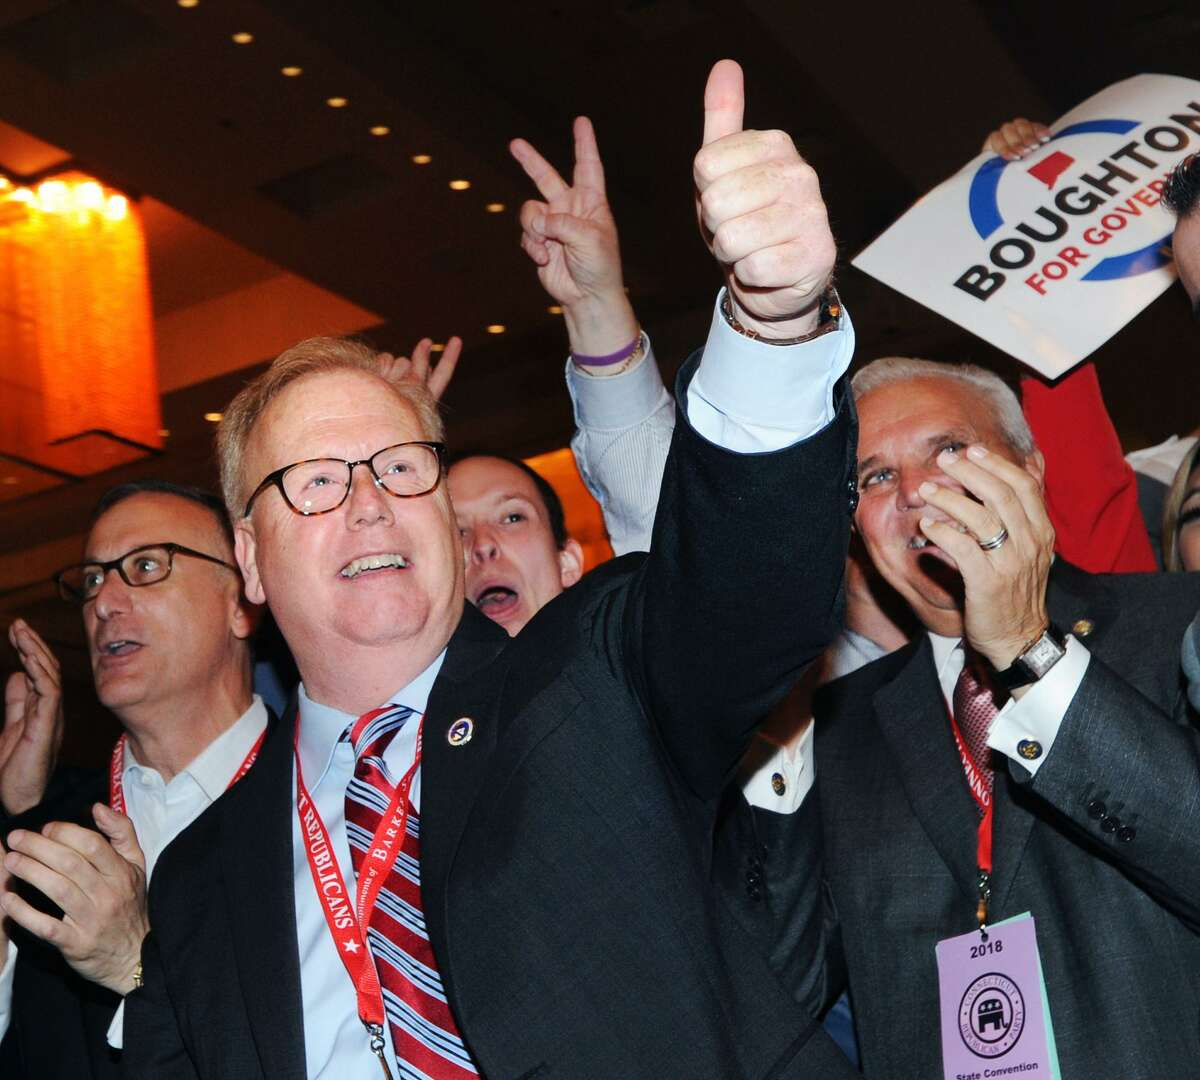 Danbury Mayor Mark Boughton, center, reacts after surpassing 50% of the delegate votes, enough needed to win the unofficial nomination as the Republican candidate for Governor during the Republican State Convention at Foxwoods Casino, Mashantucket, Conn., Saturday, May 12, 2018.